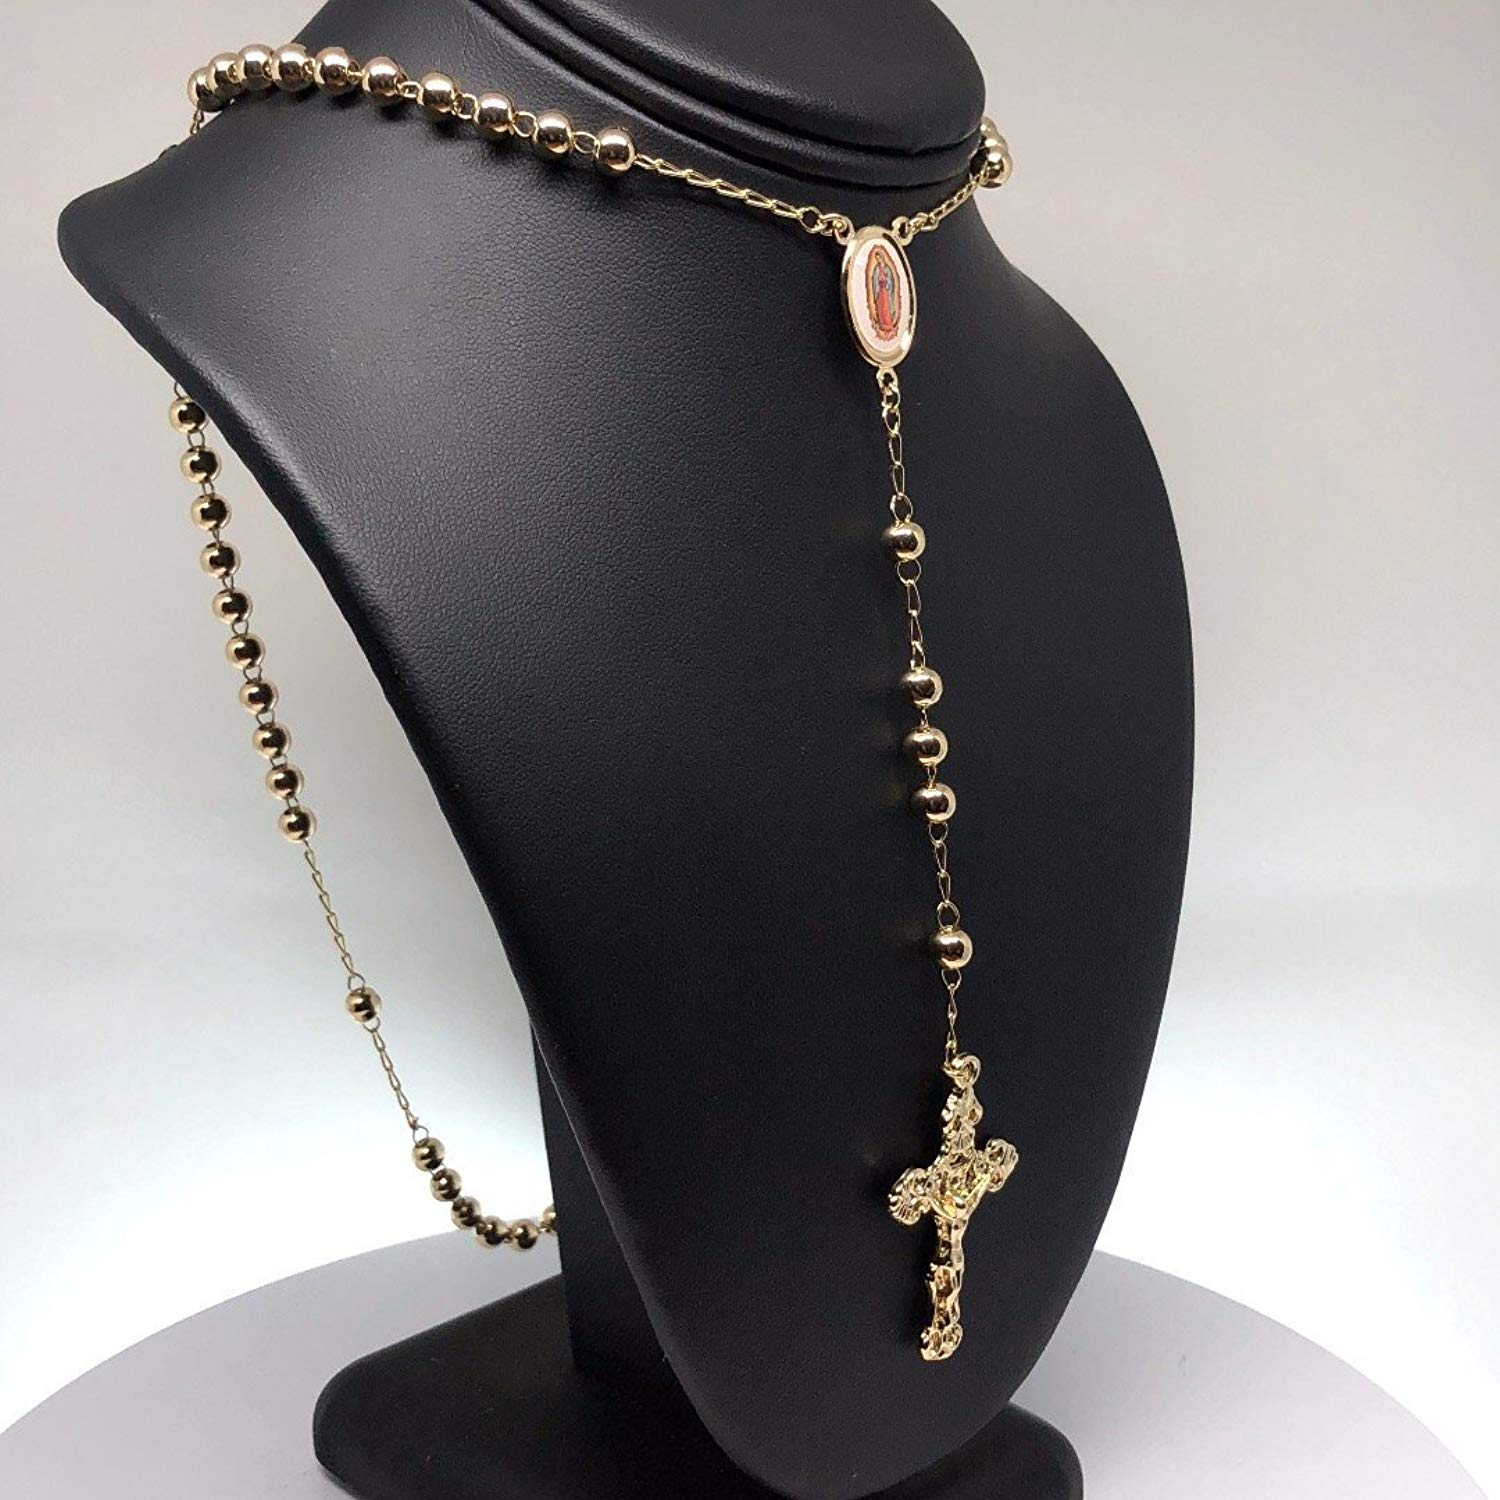 "Gold Plated Virgin Mary Rosary Necklace Virgen de Guadalupe Rosario Crucifijo 26"" - Fran & Co. Jewelry"